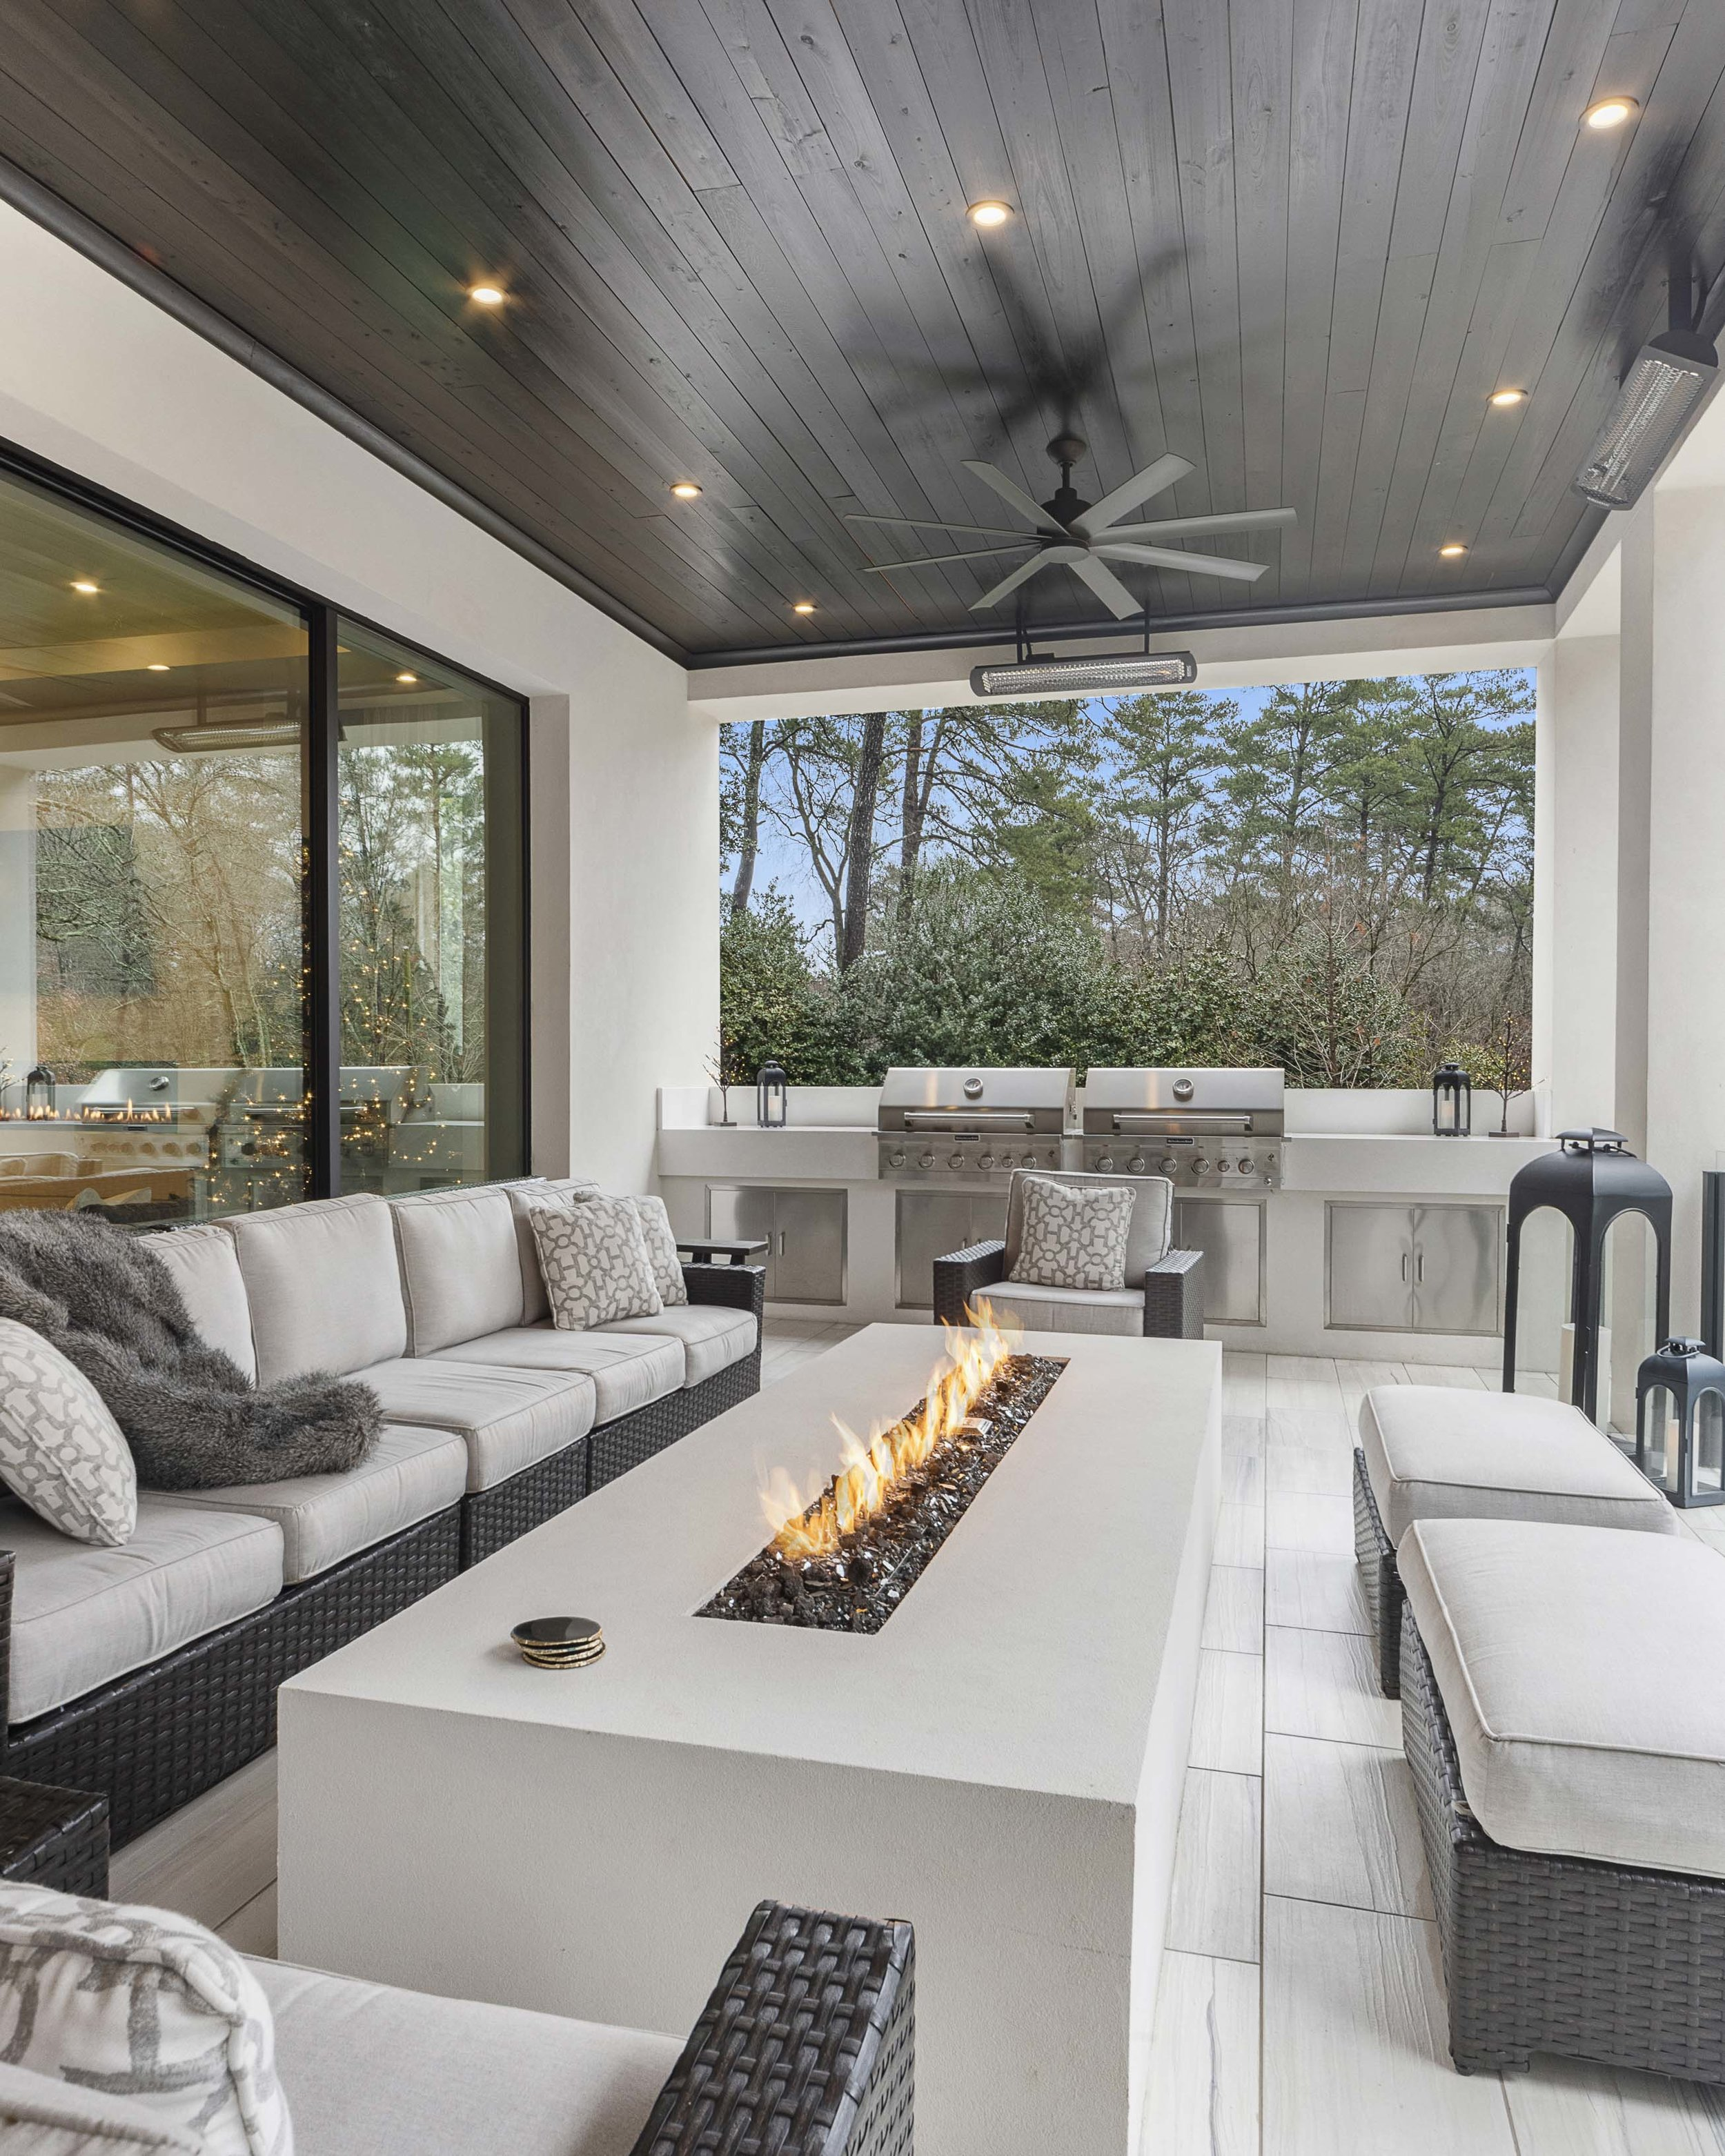 Habersham_outdoor room with built-in grill.jpg